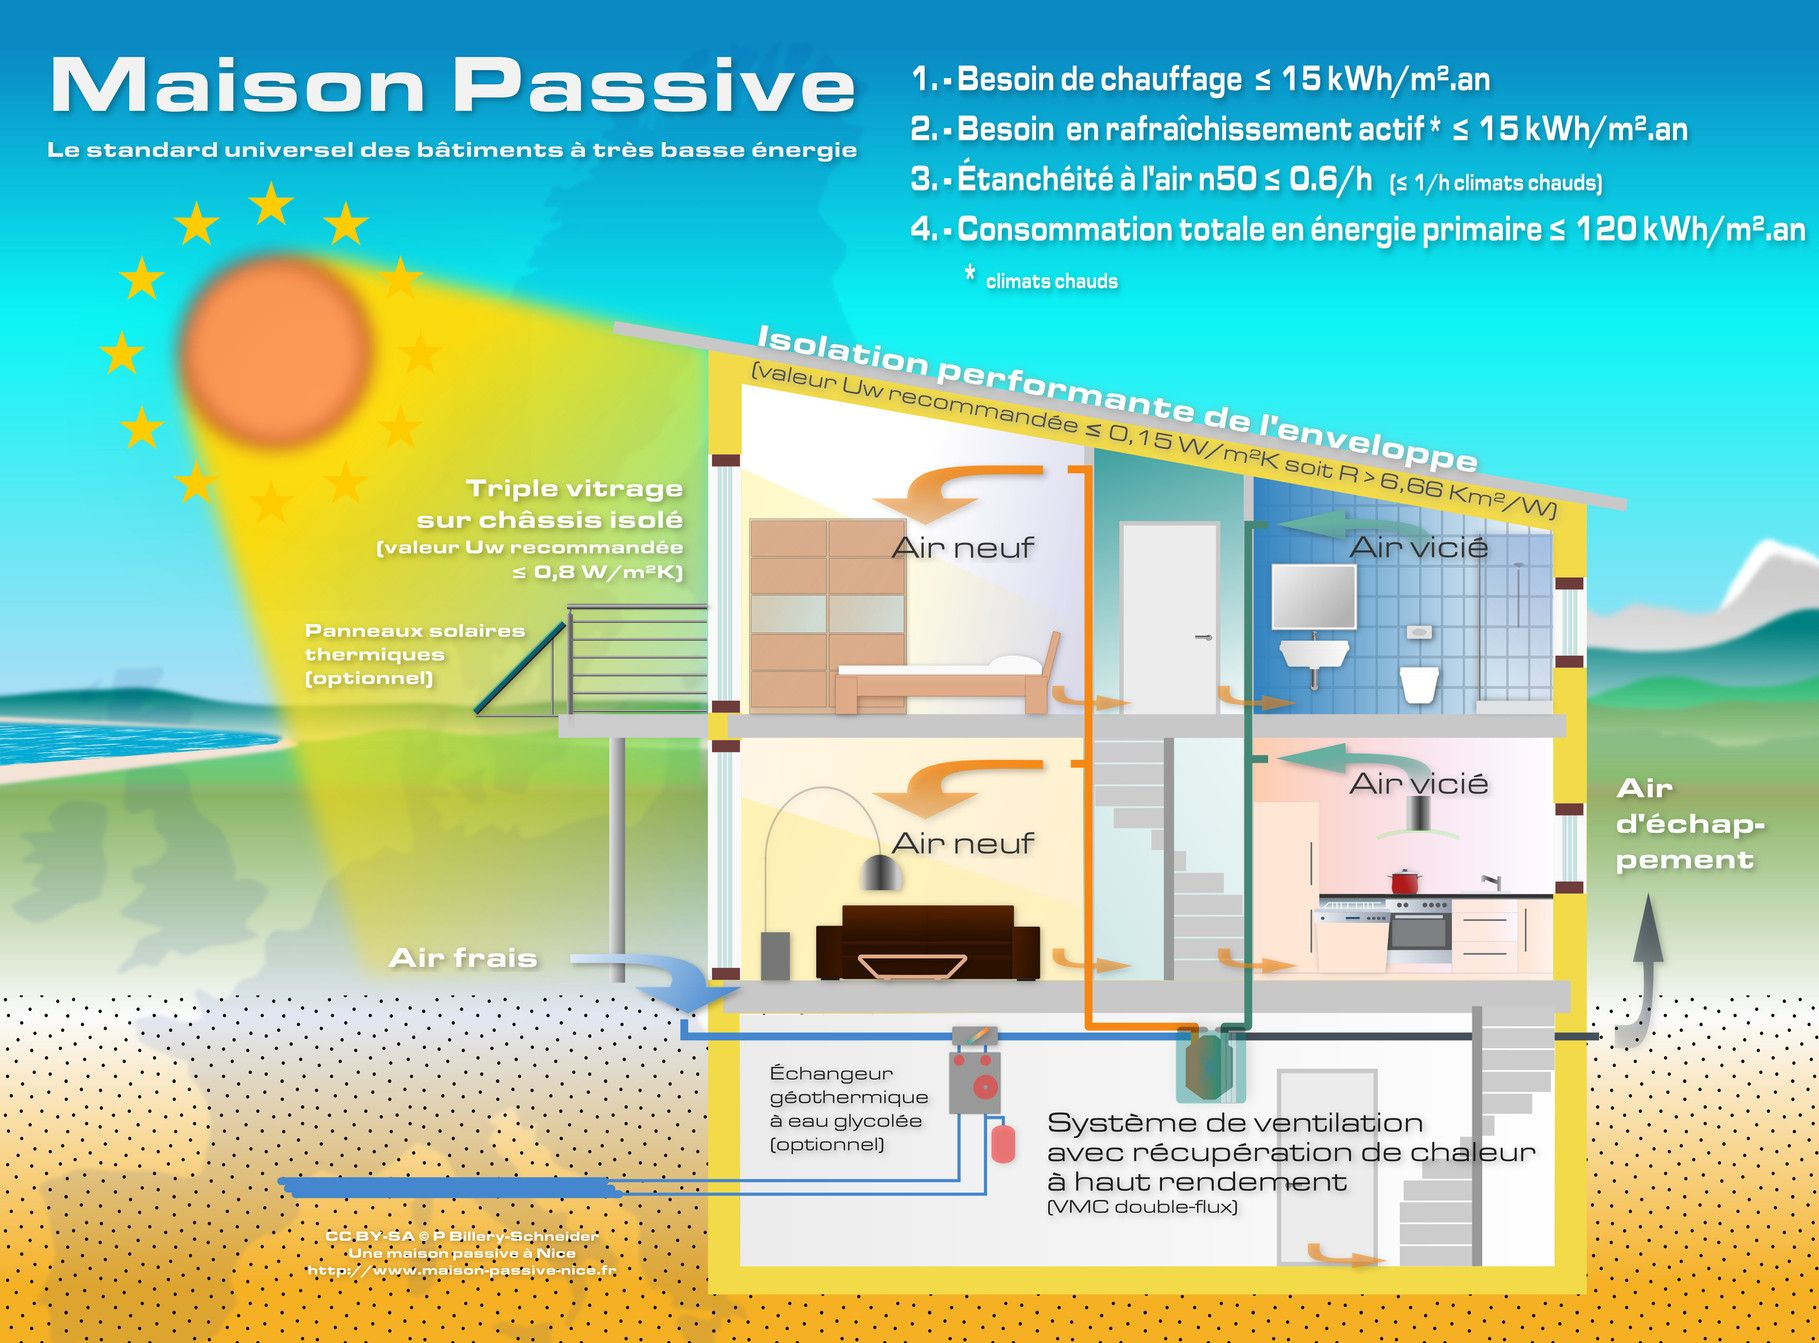 Plan maison passive bioclimatique architecte for Architecte maison passive